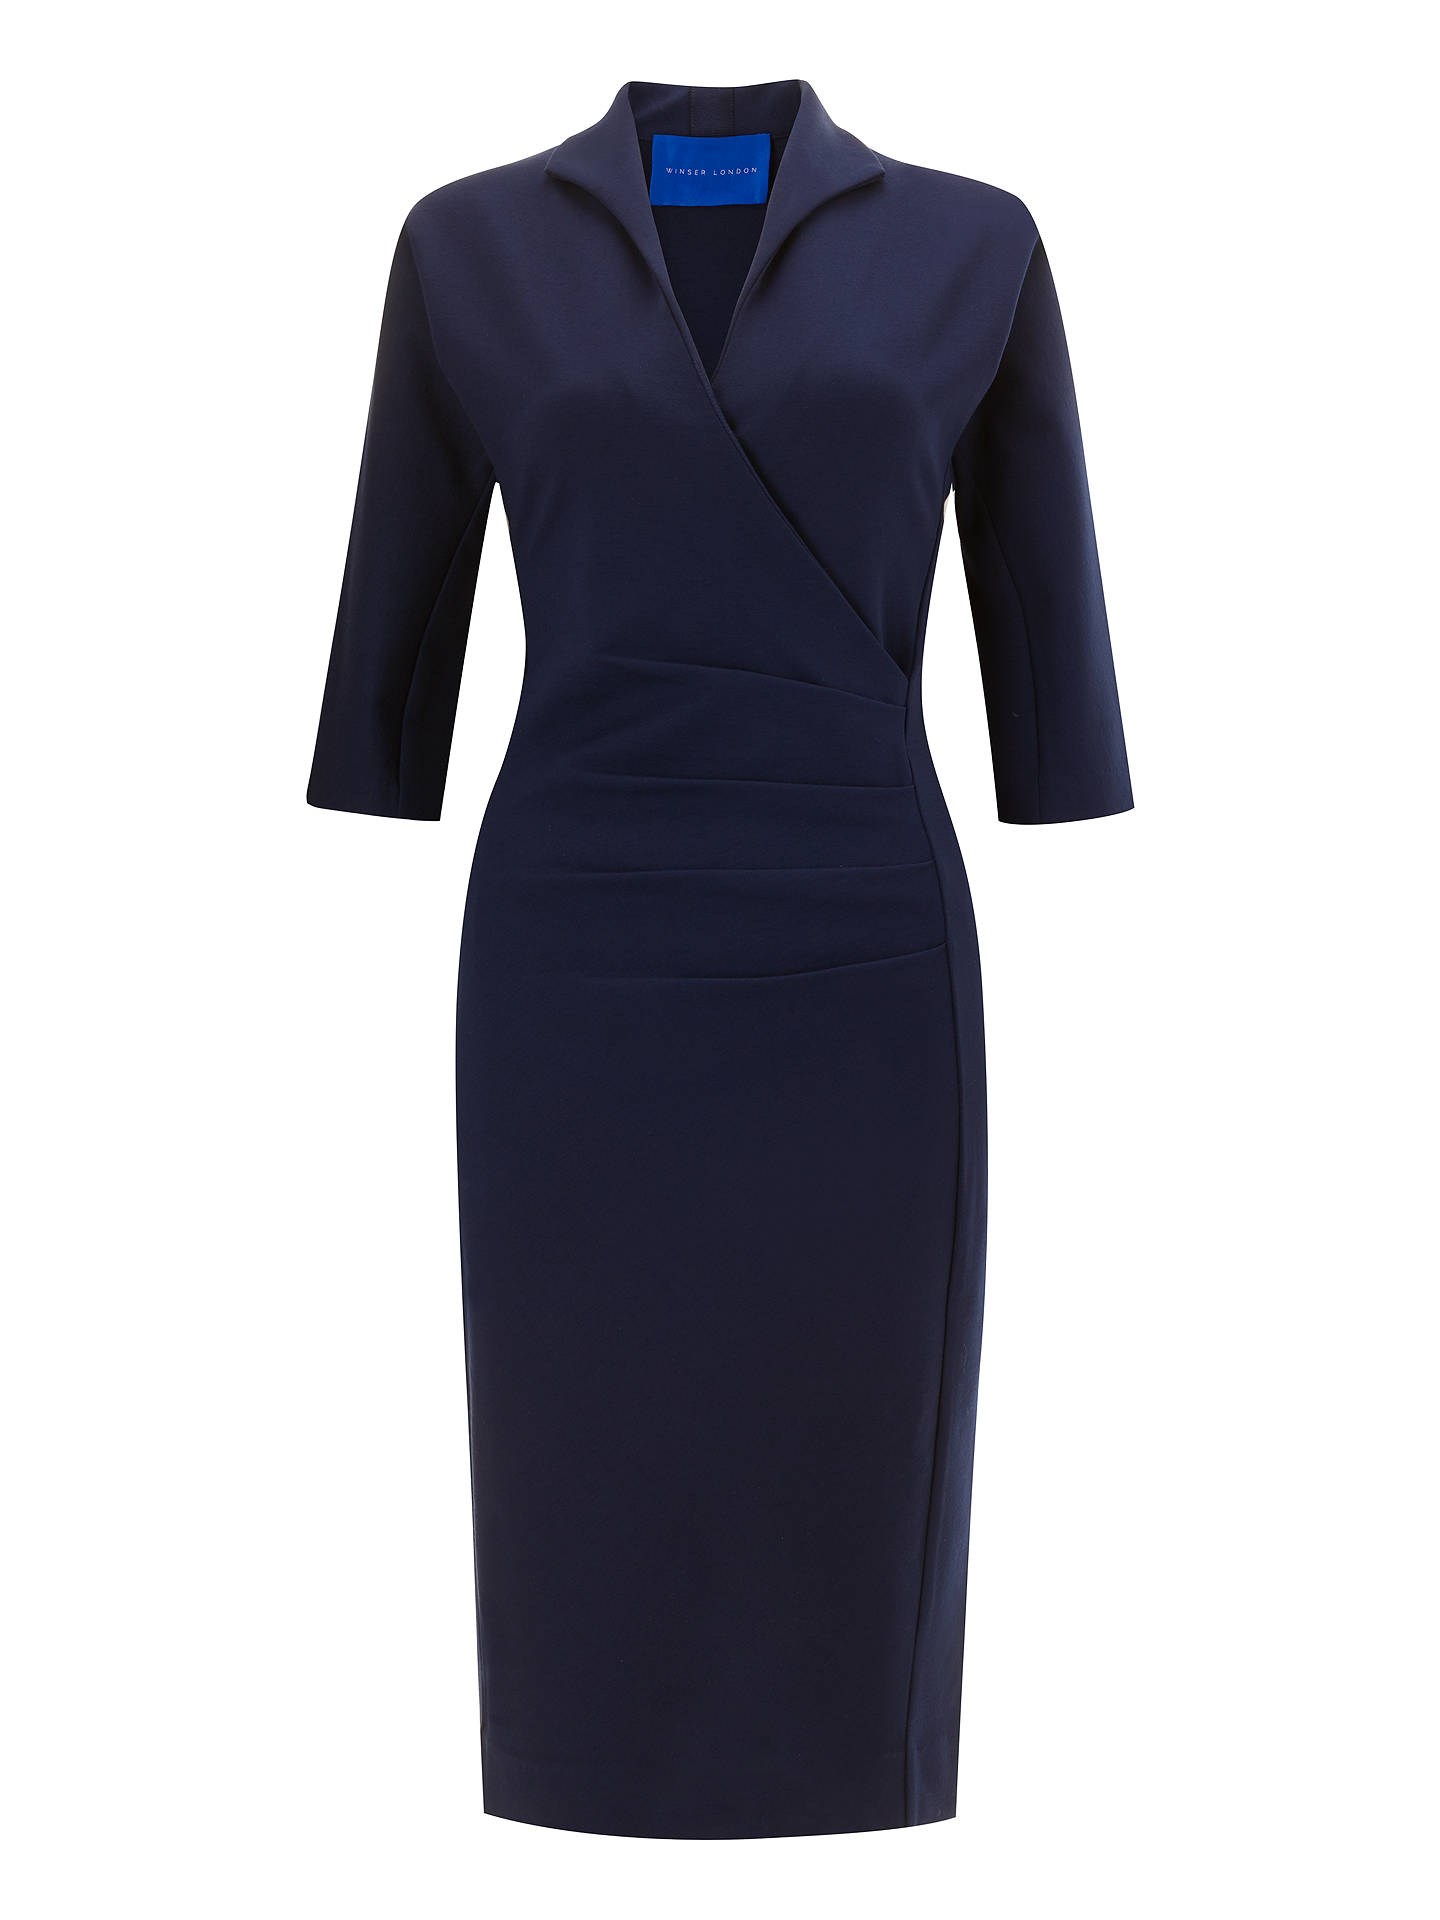 BuyWinser London Grace Miracle Dress, Midnight Navy, 6 Online at johnlewis.com